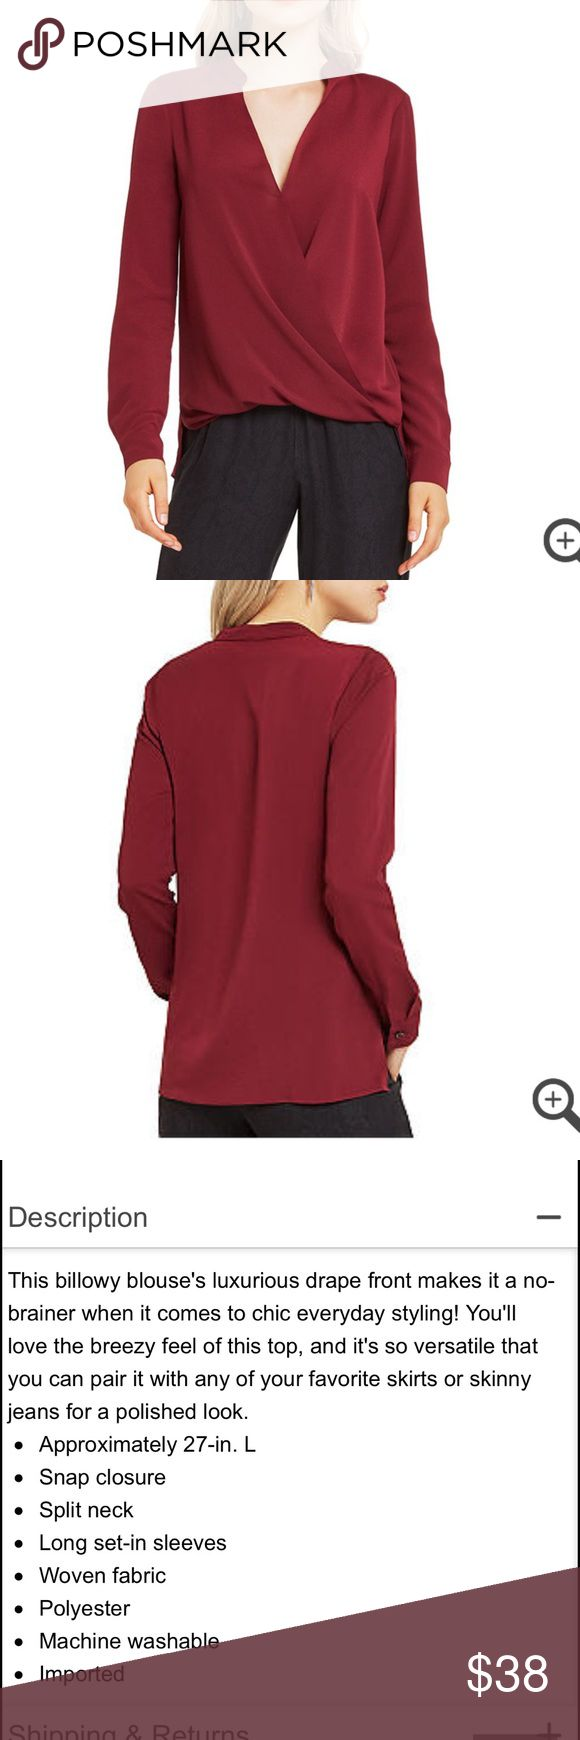 BCBGeneration Drape Front Blouse Maroon color. Please Let me know if you have any question.💖thanks BCBGeneration Tops Blouses